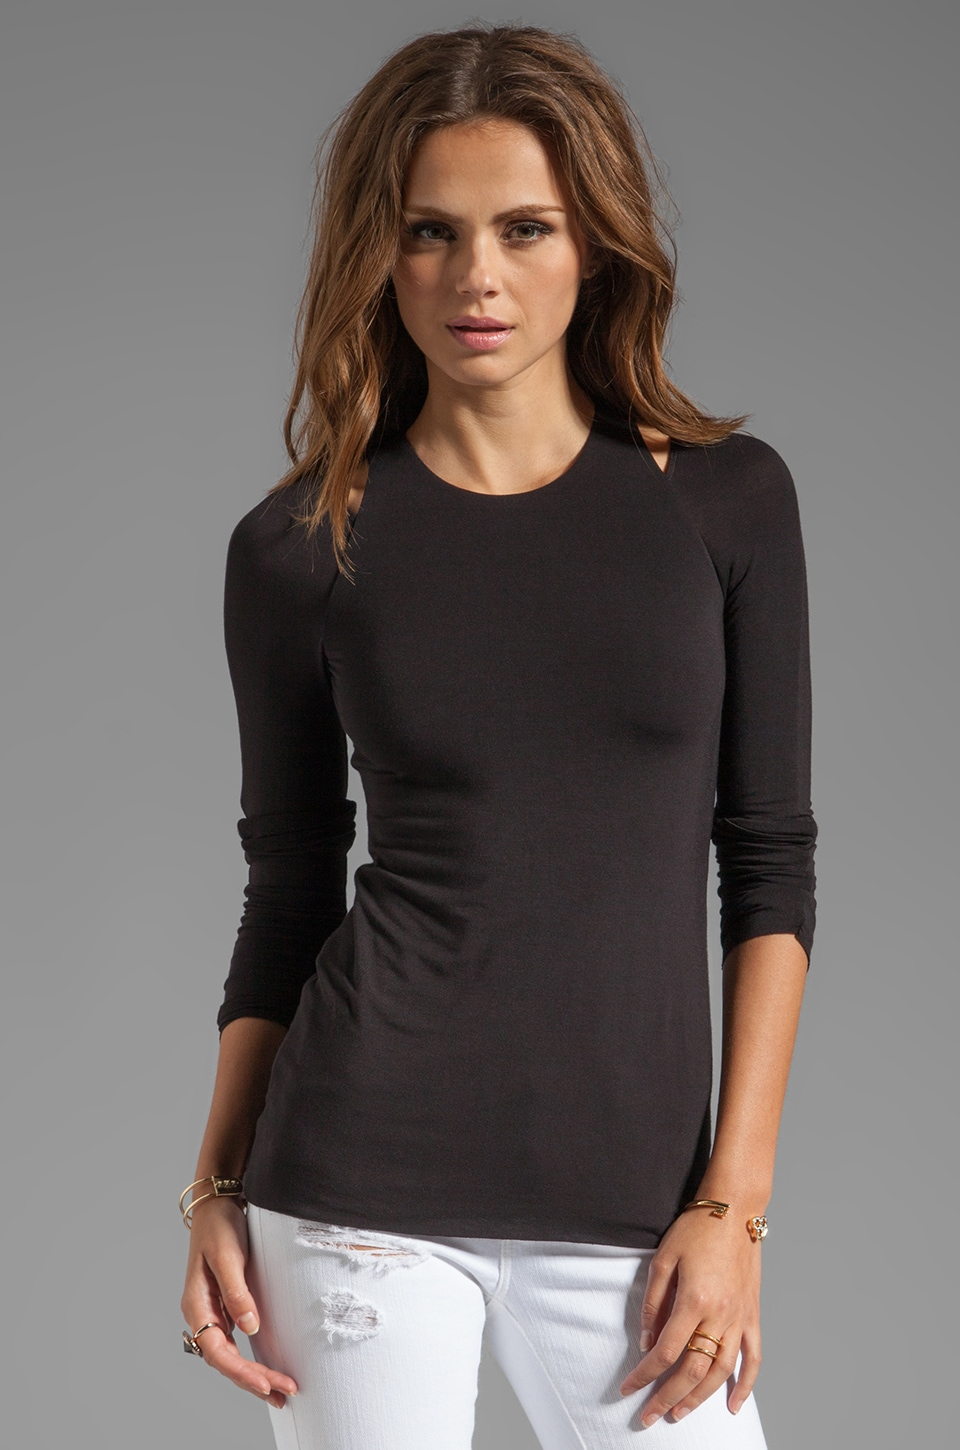 Bailey 44 Reboot Cutout Shoulder Top in Black